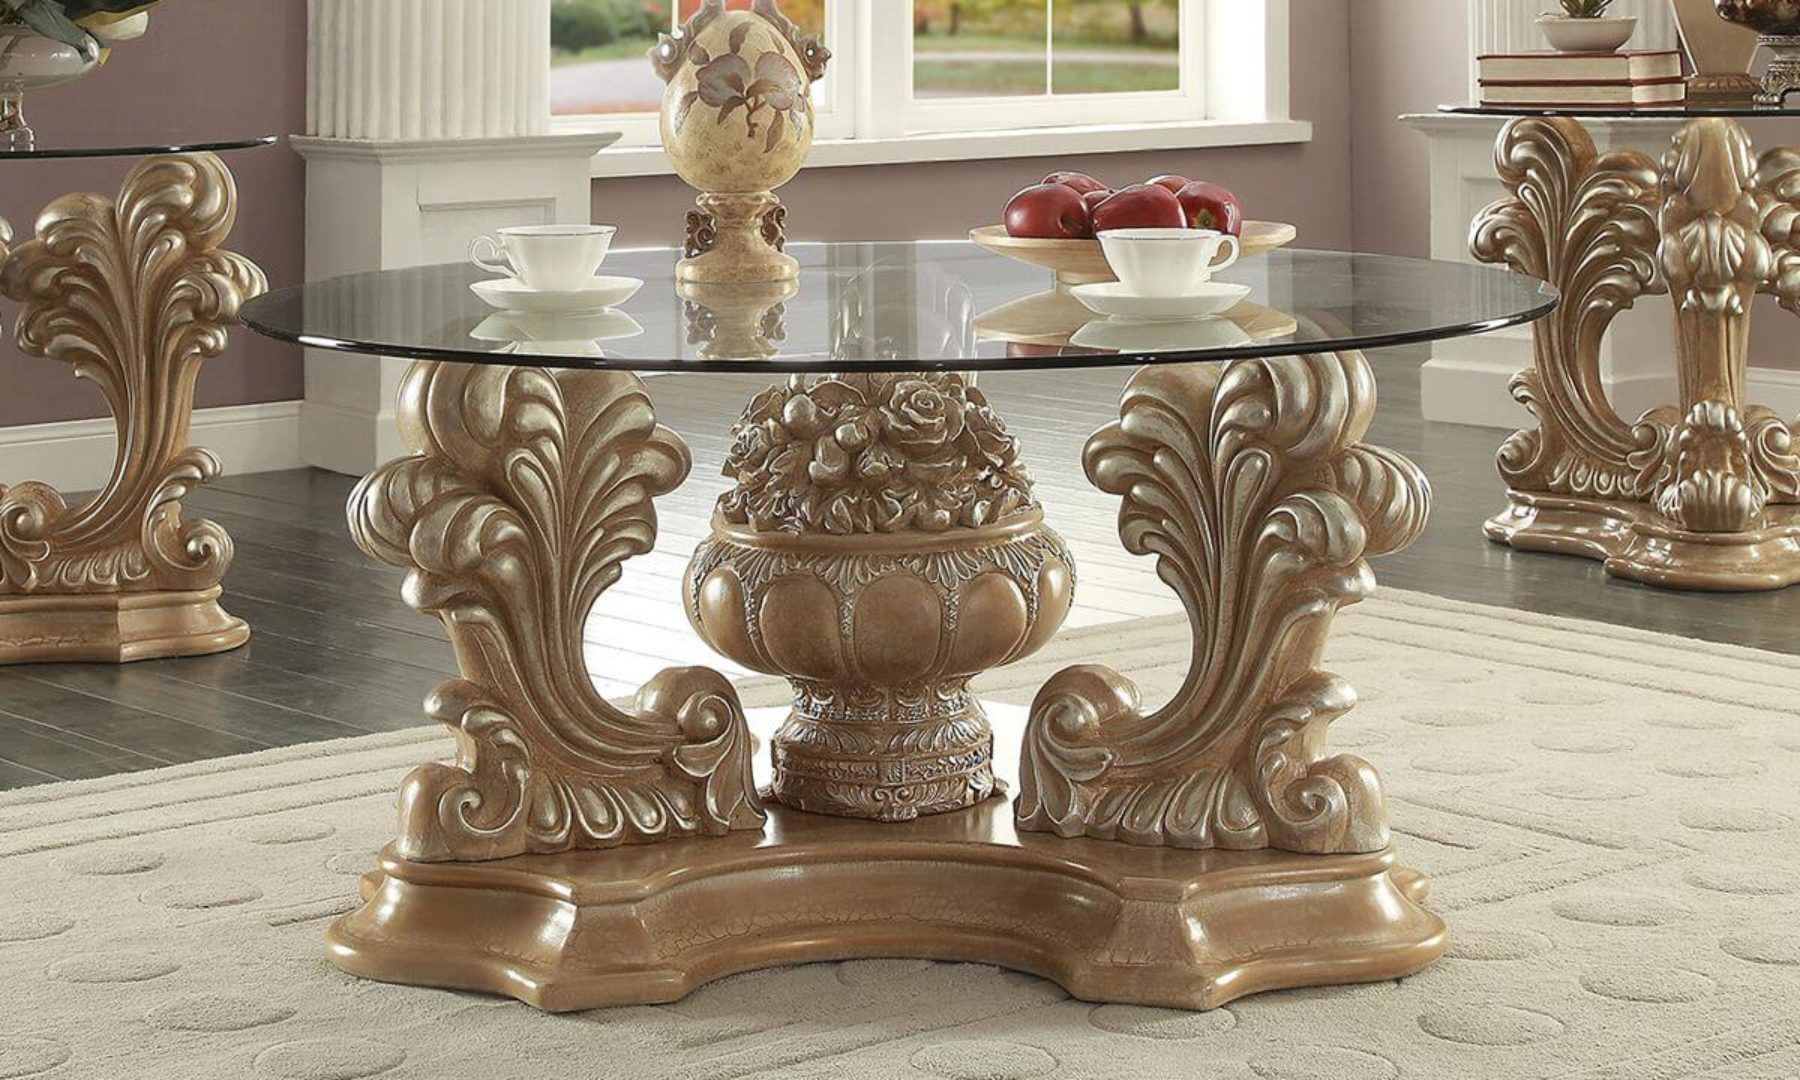 Pickle Frost Antique Silver Coffee Table Traditional Homey Design Hd 7012 Hd C7012 Coffee Table Silver Coffee Table Royal Furniture [ 1080 x 1800 Pixel ]